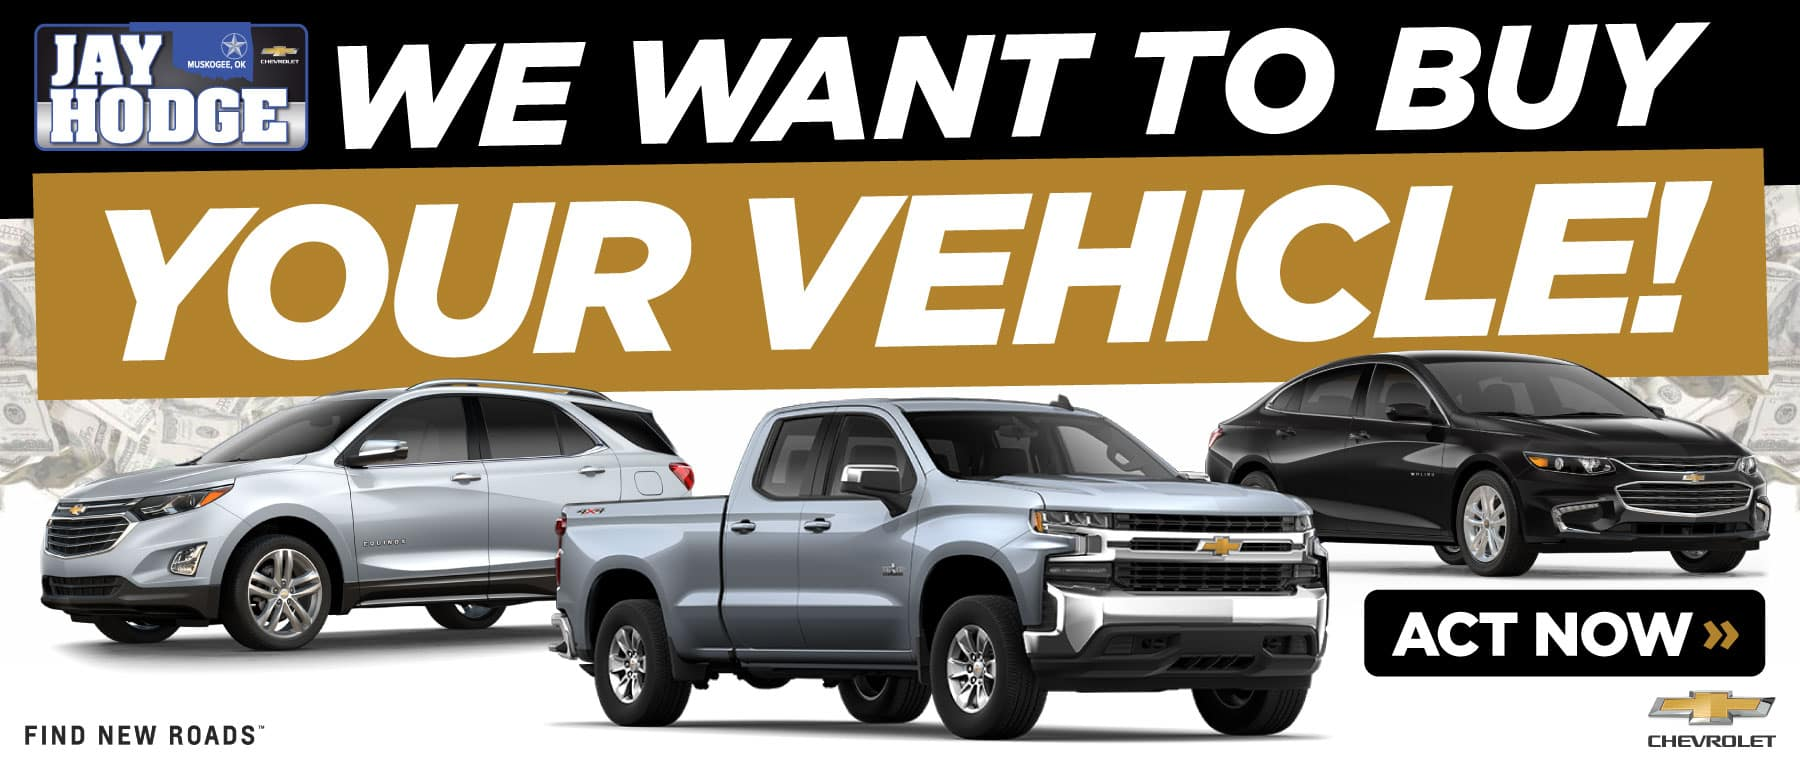 We want to buy Your Vehicle – ACT NOW!